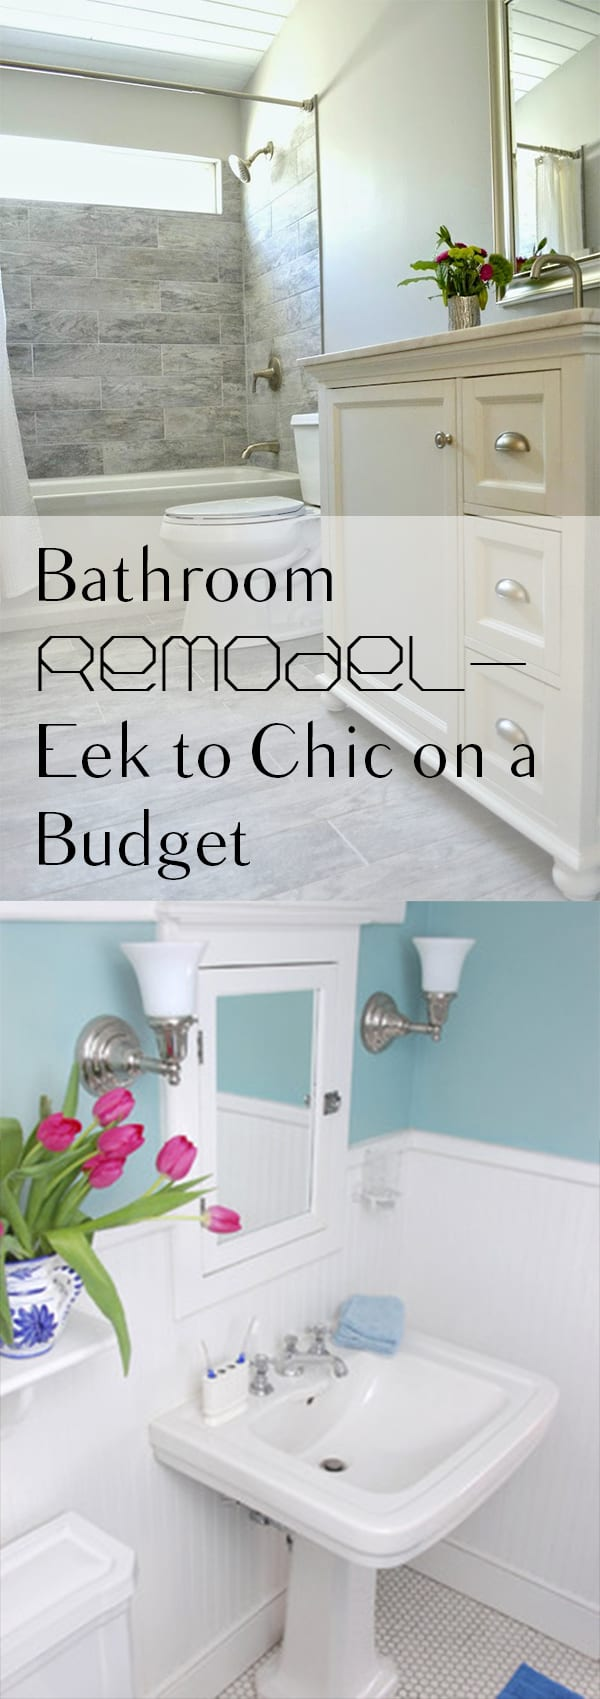 How to remodel your bathroom from eek to chic on a budget for Tips for building a house on a budget